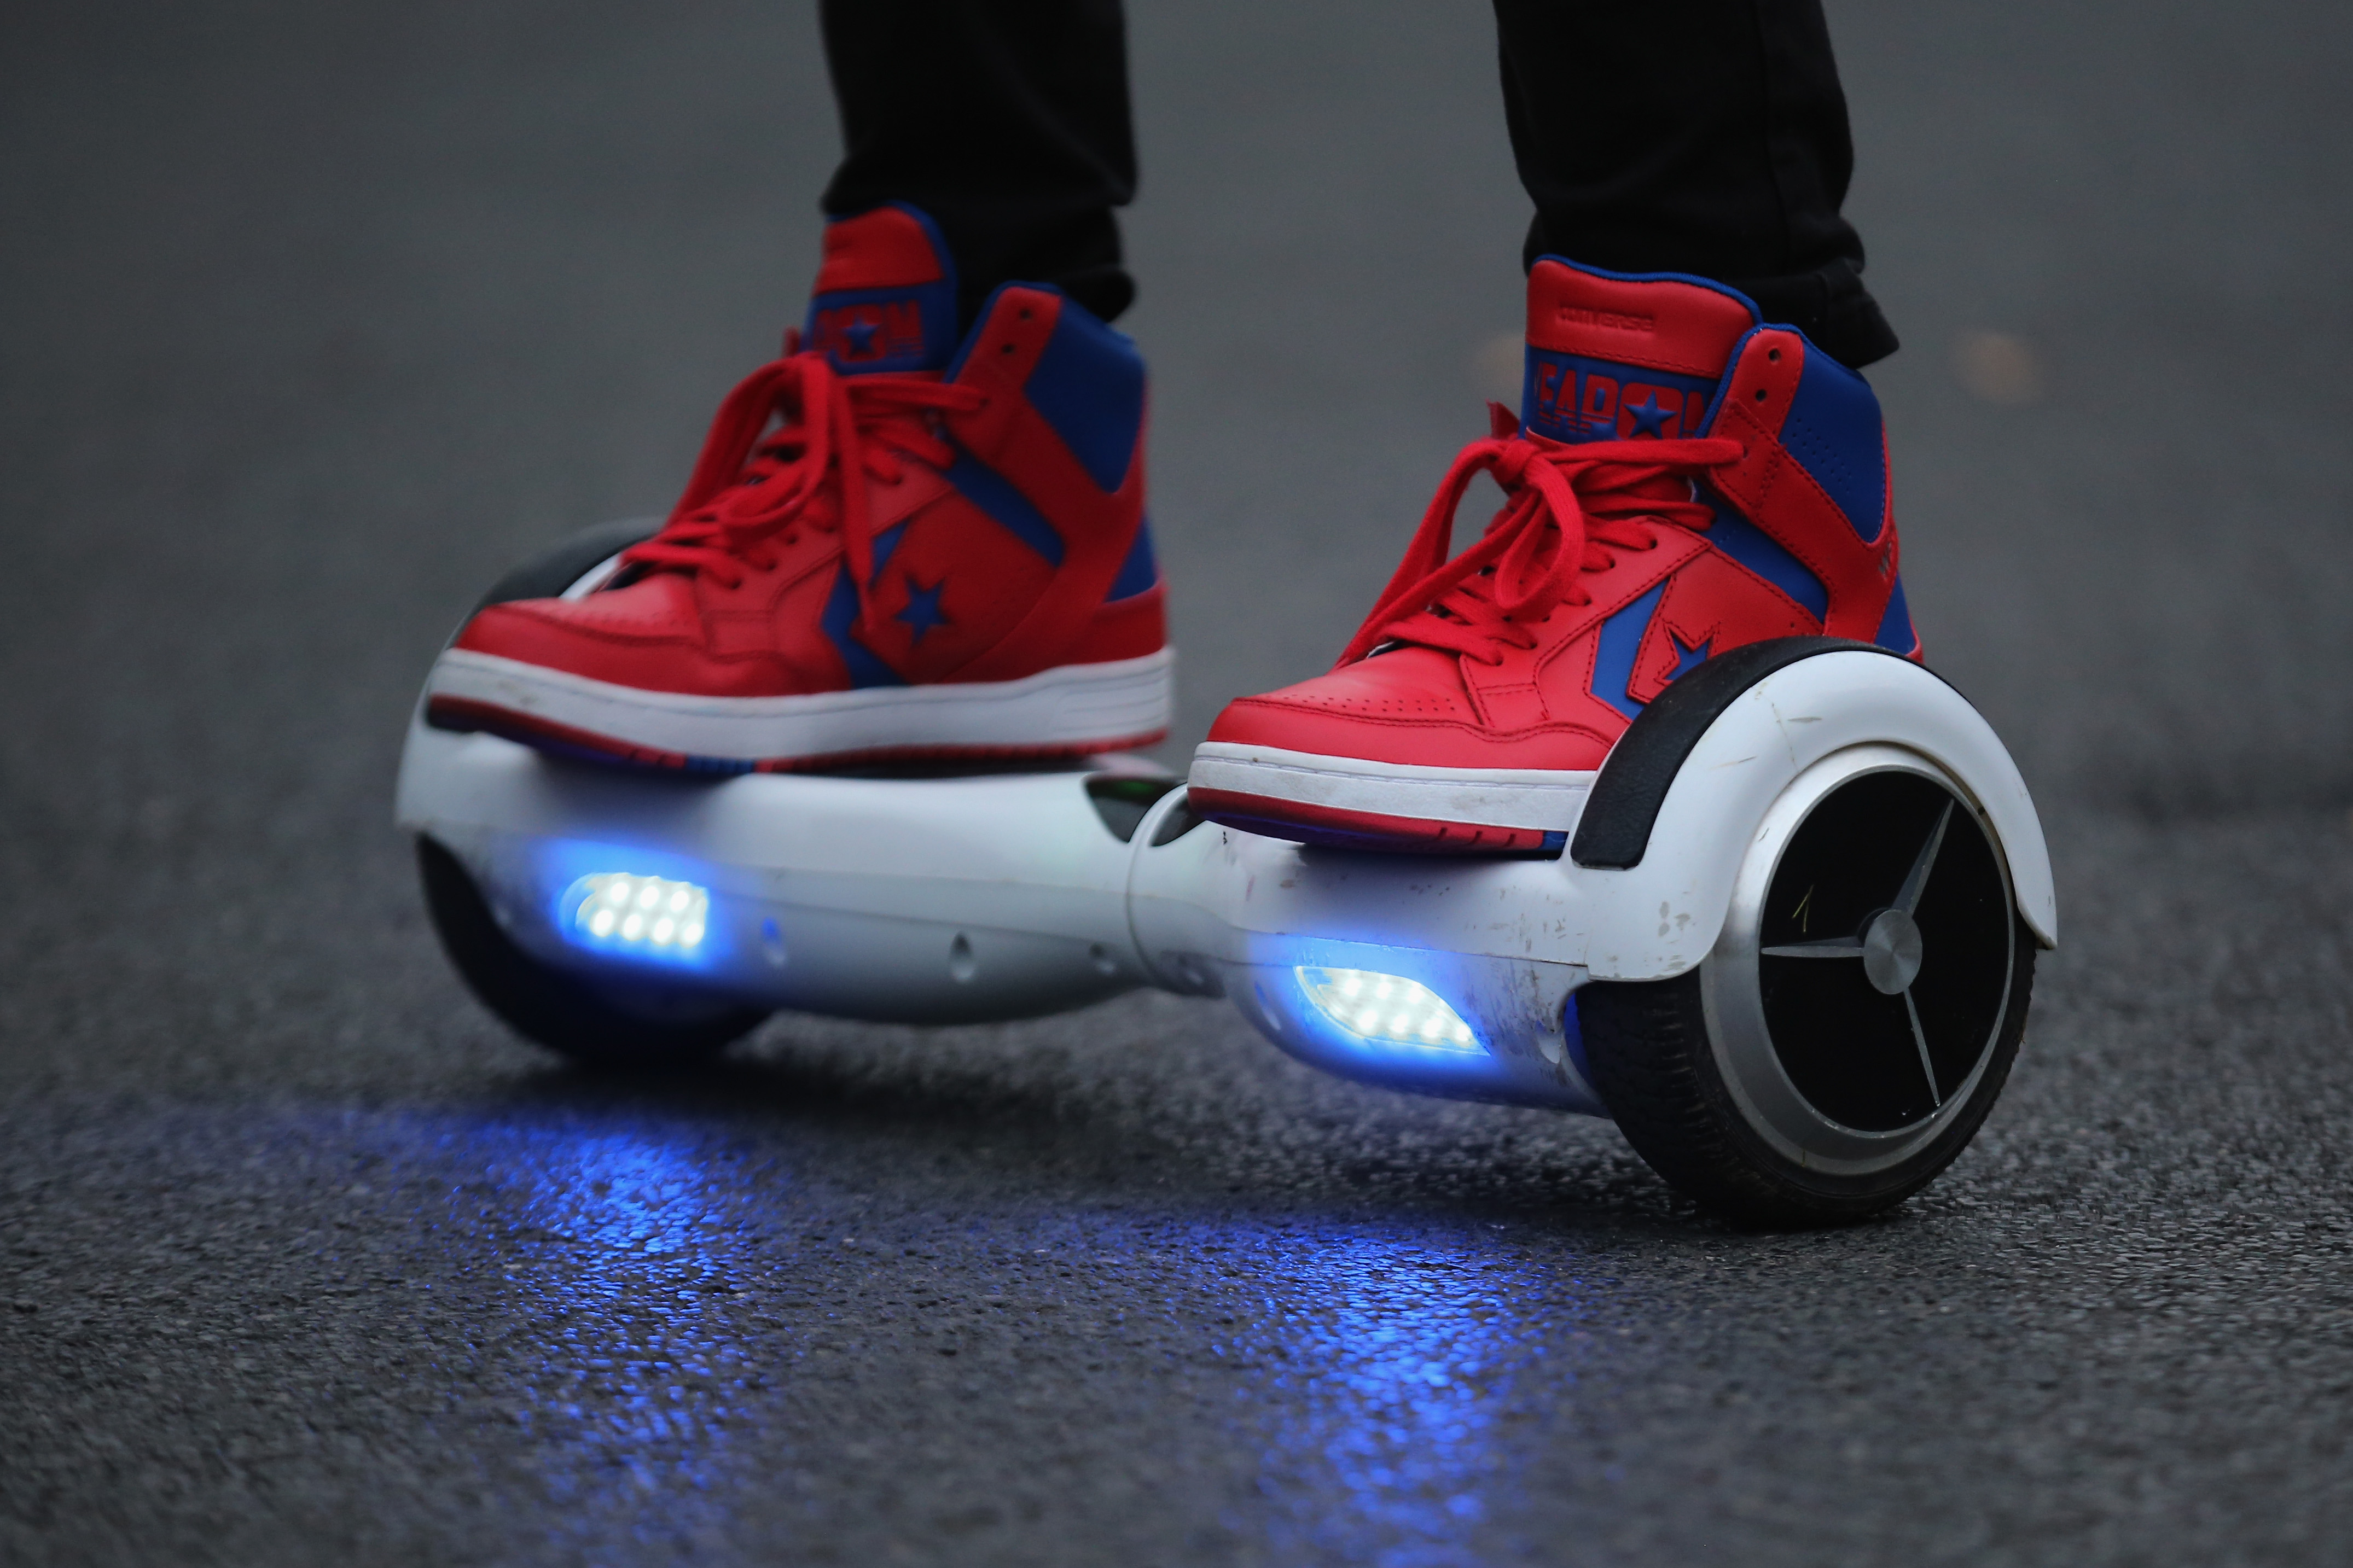 A youth poses as he rides a hoverboard, which are also known as self-balancing scooters and balance boards, on October 13, 2015 in Knutsford, England.